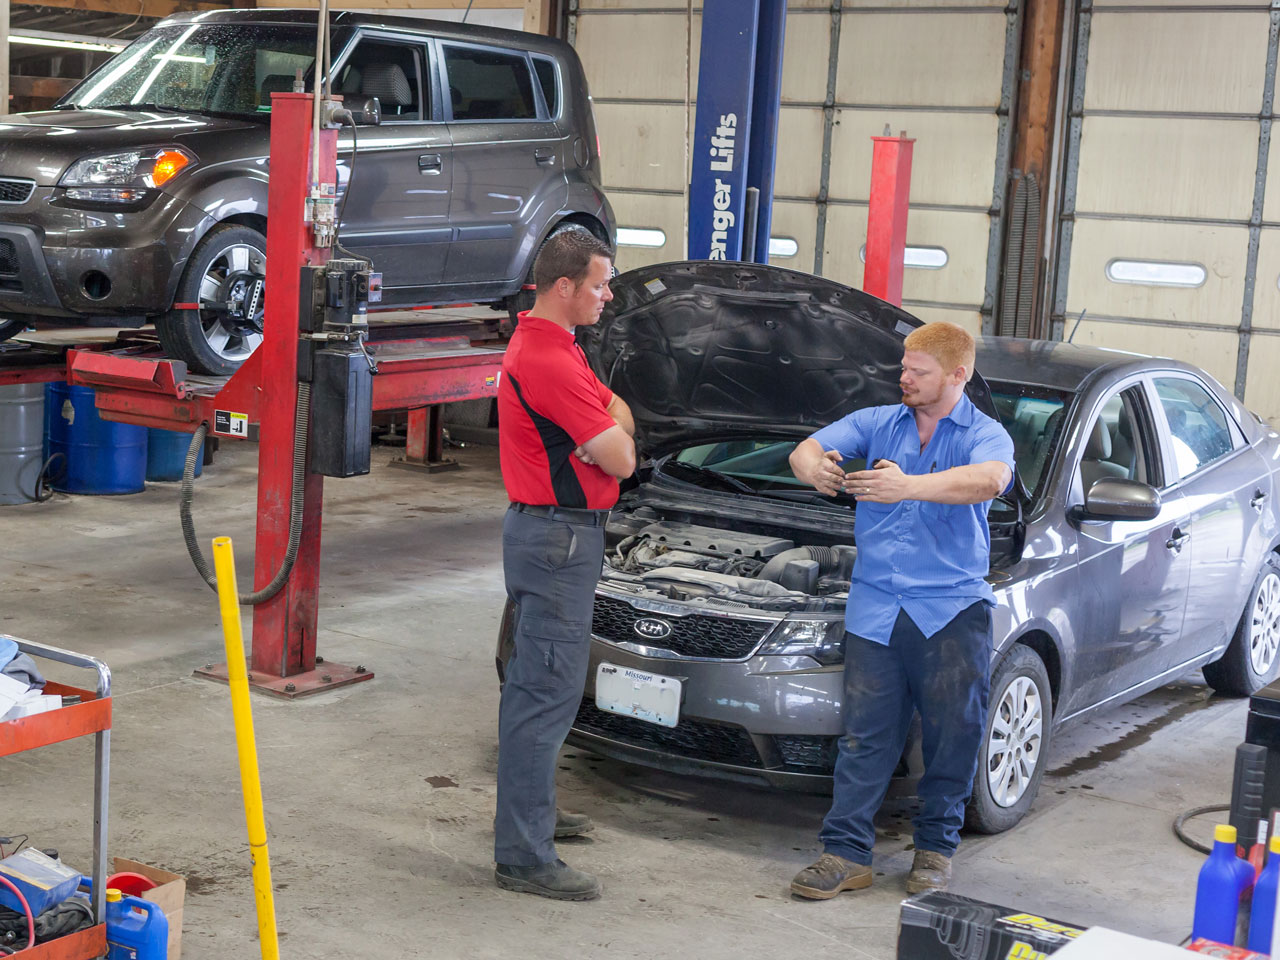 Two automotive technicians discussing repairs at KB Tire & Auto located in Moberly, MO